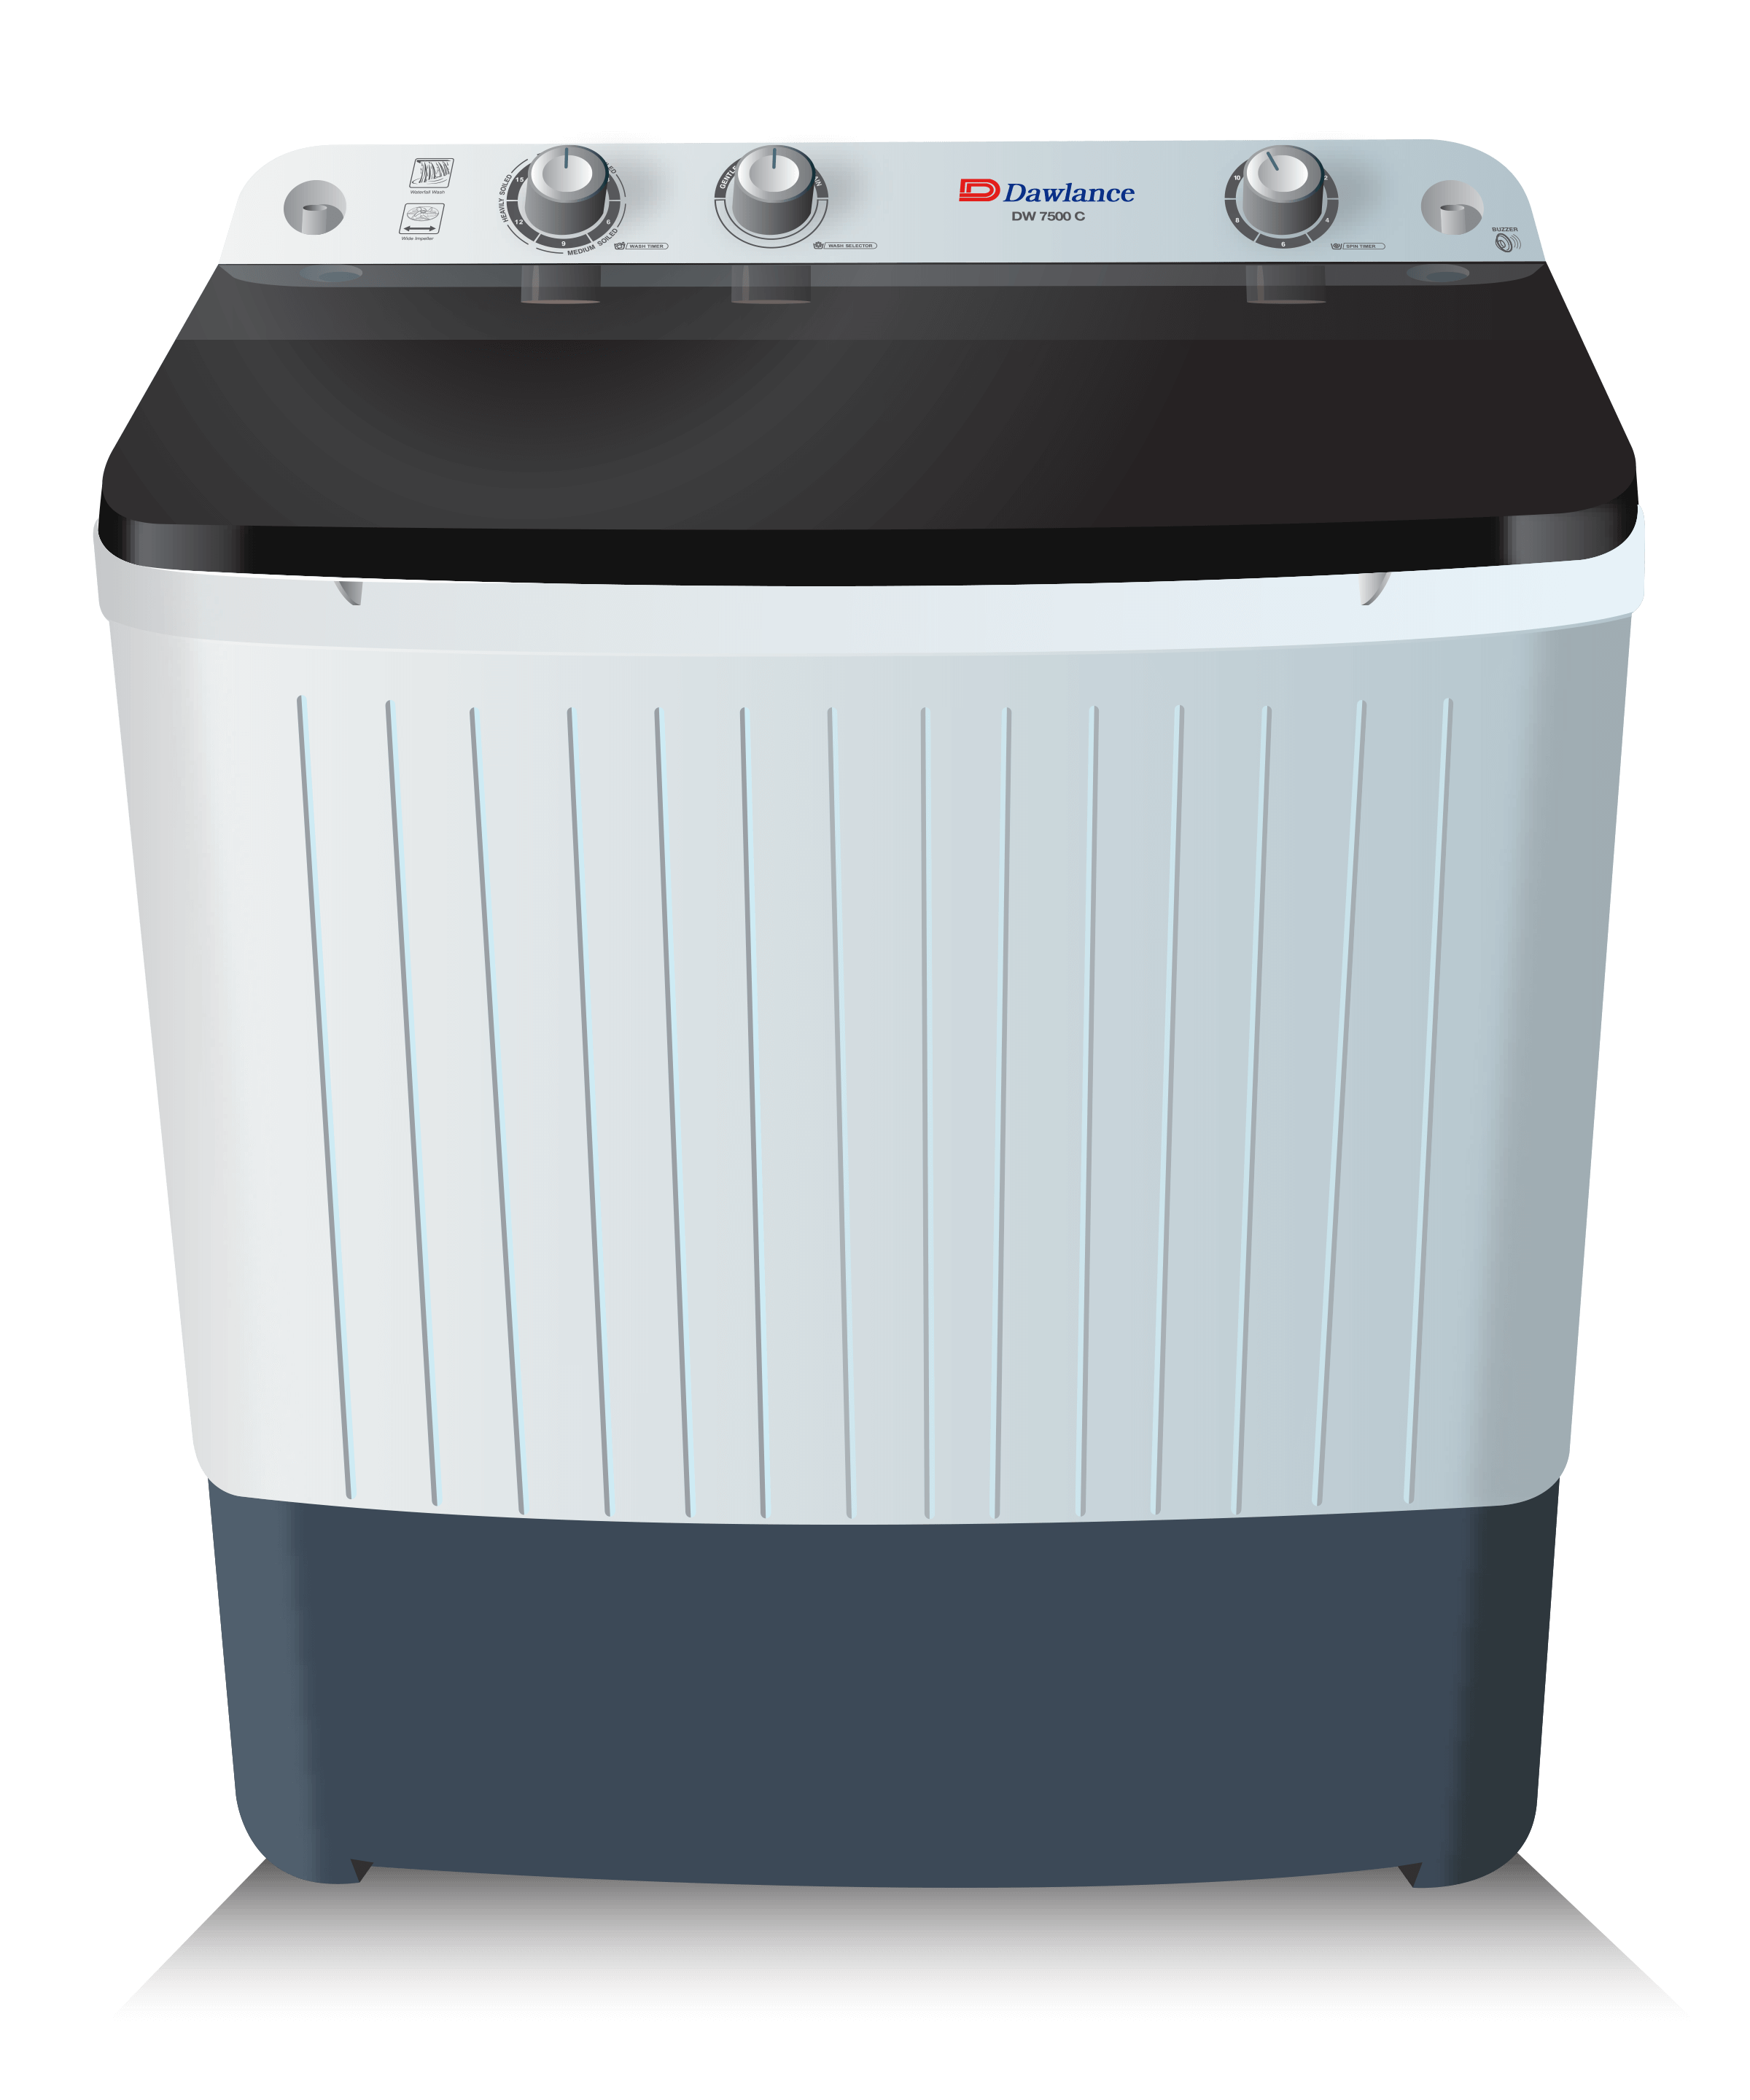 Dawlance Twin Tub Washing Machine DW7500 W 4